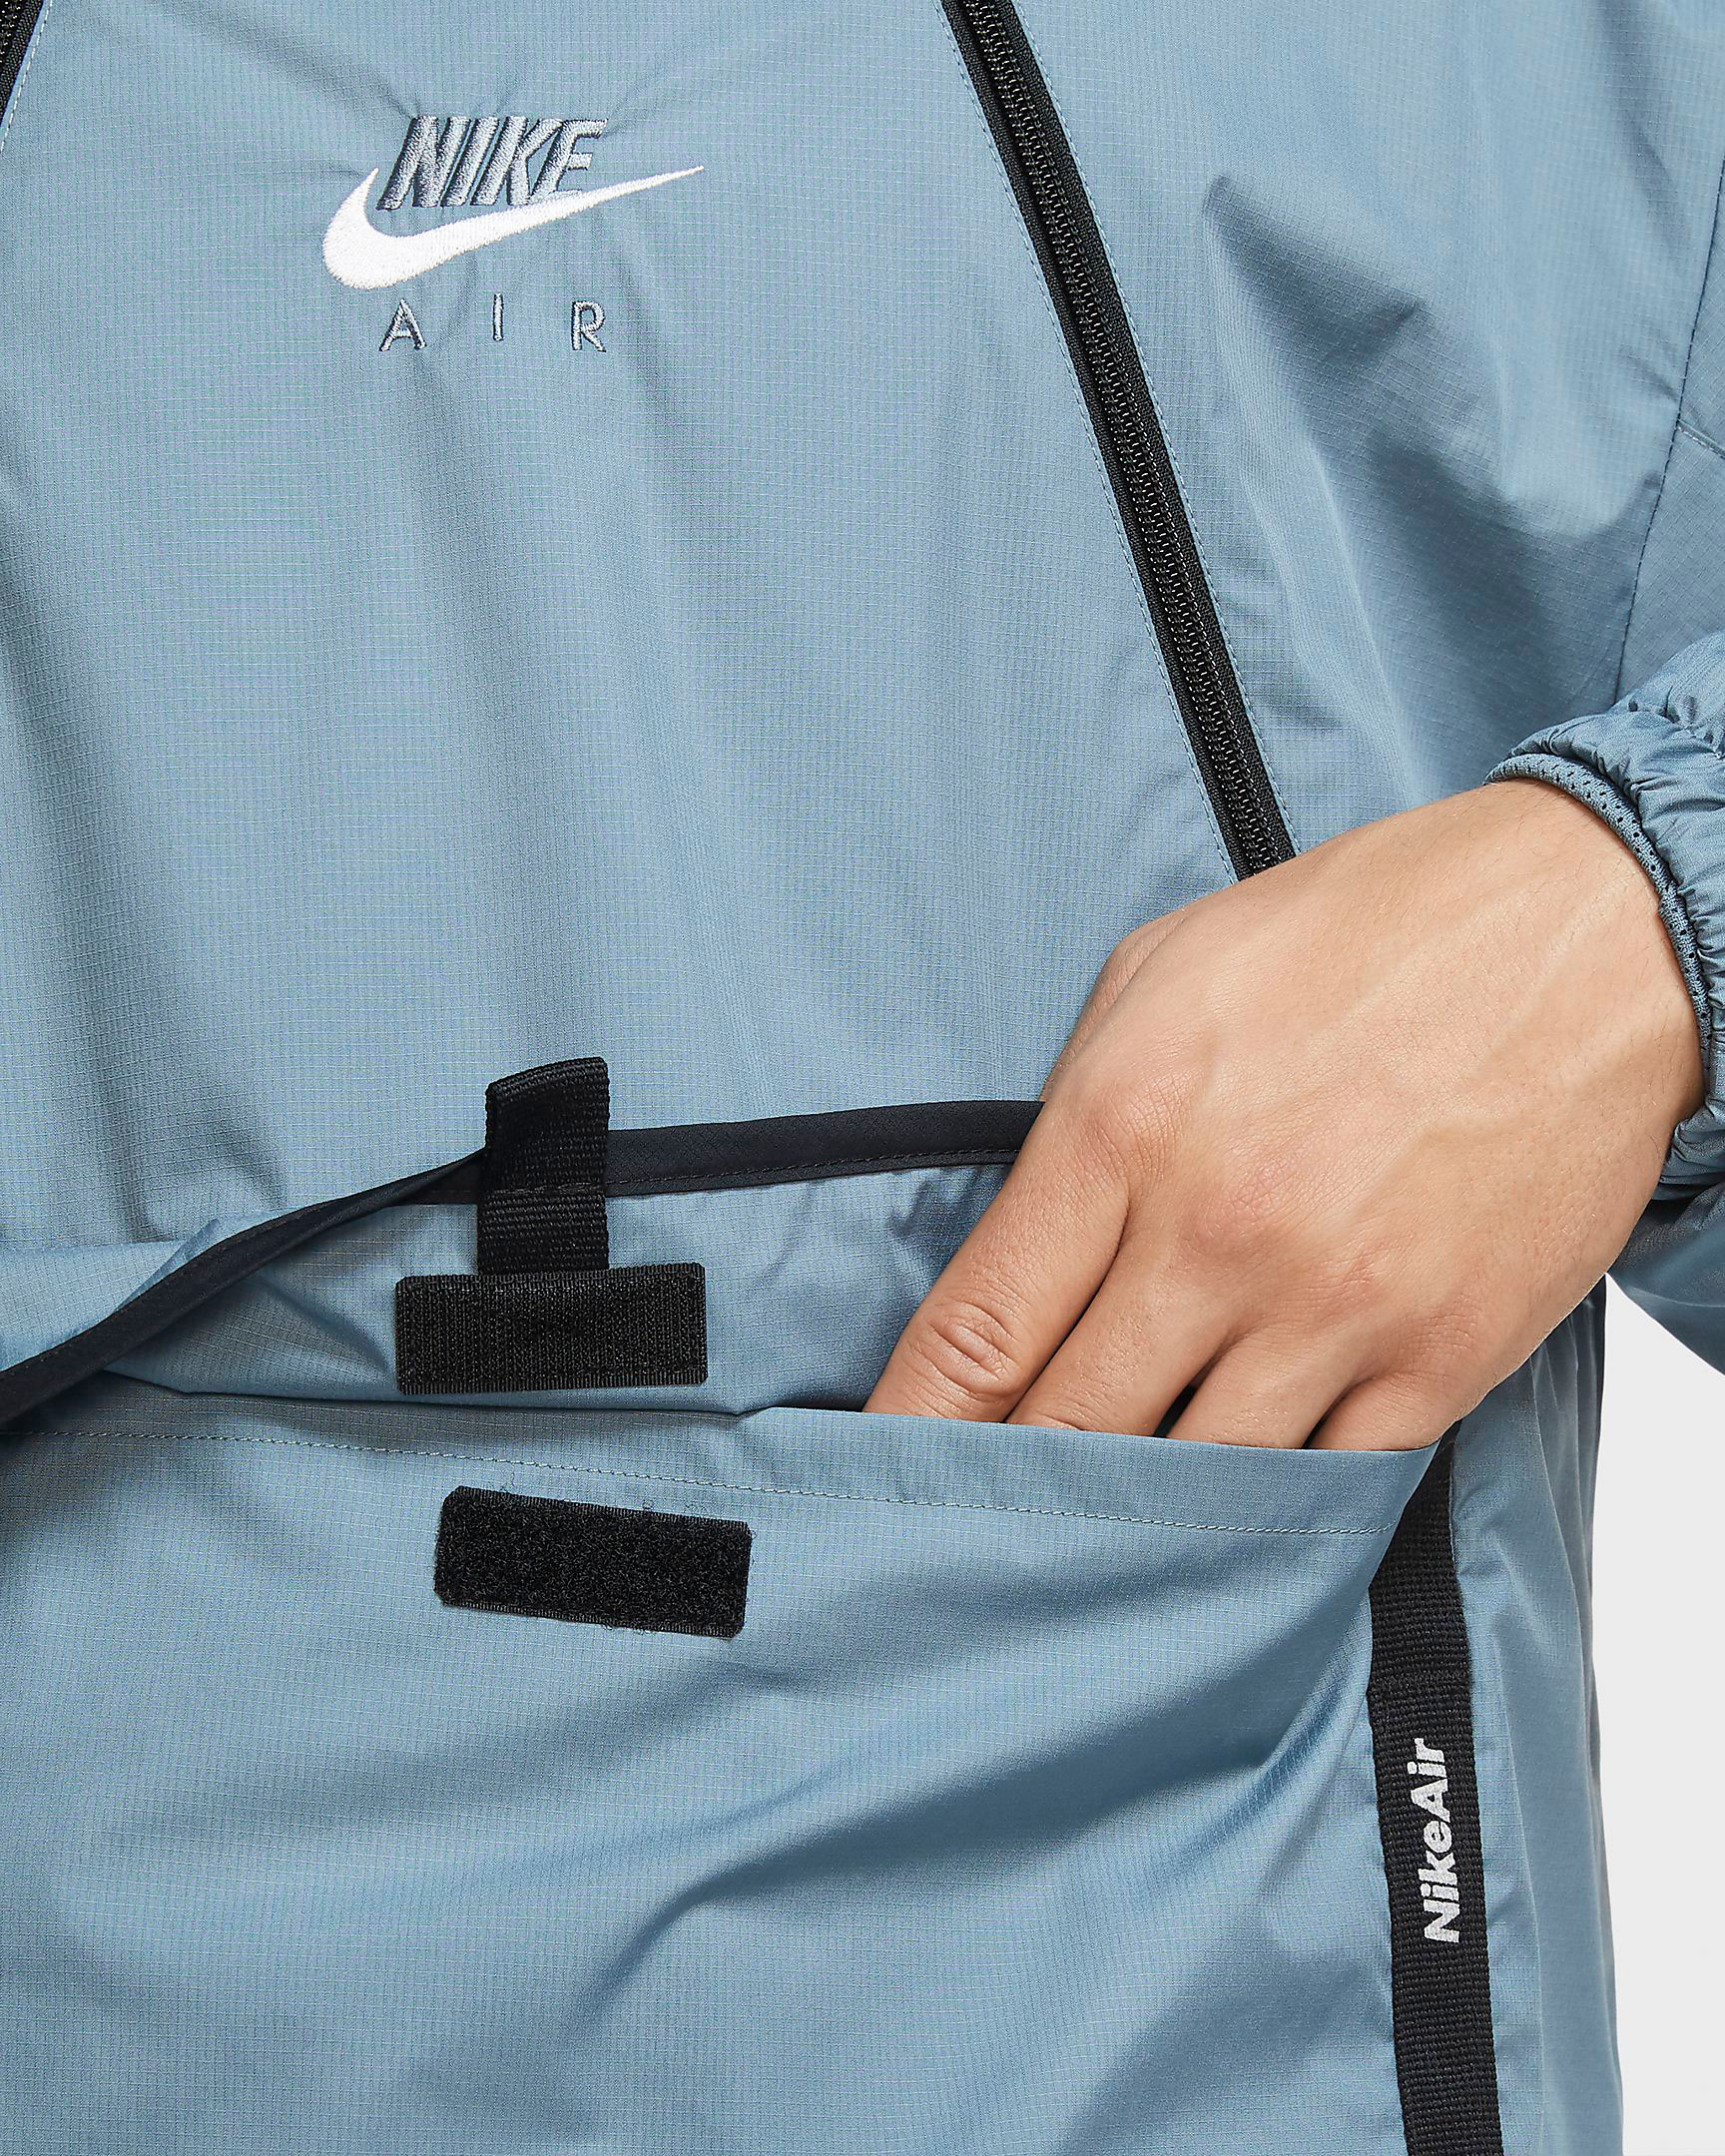 nike-air-utility-reflective-jacket-blue-3